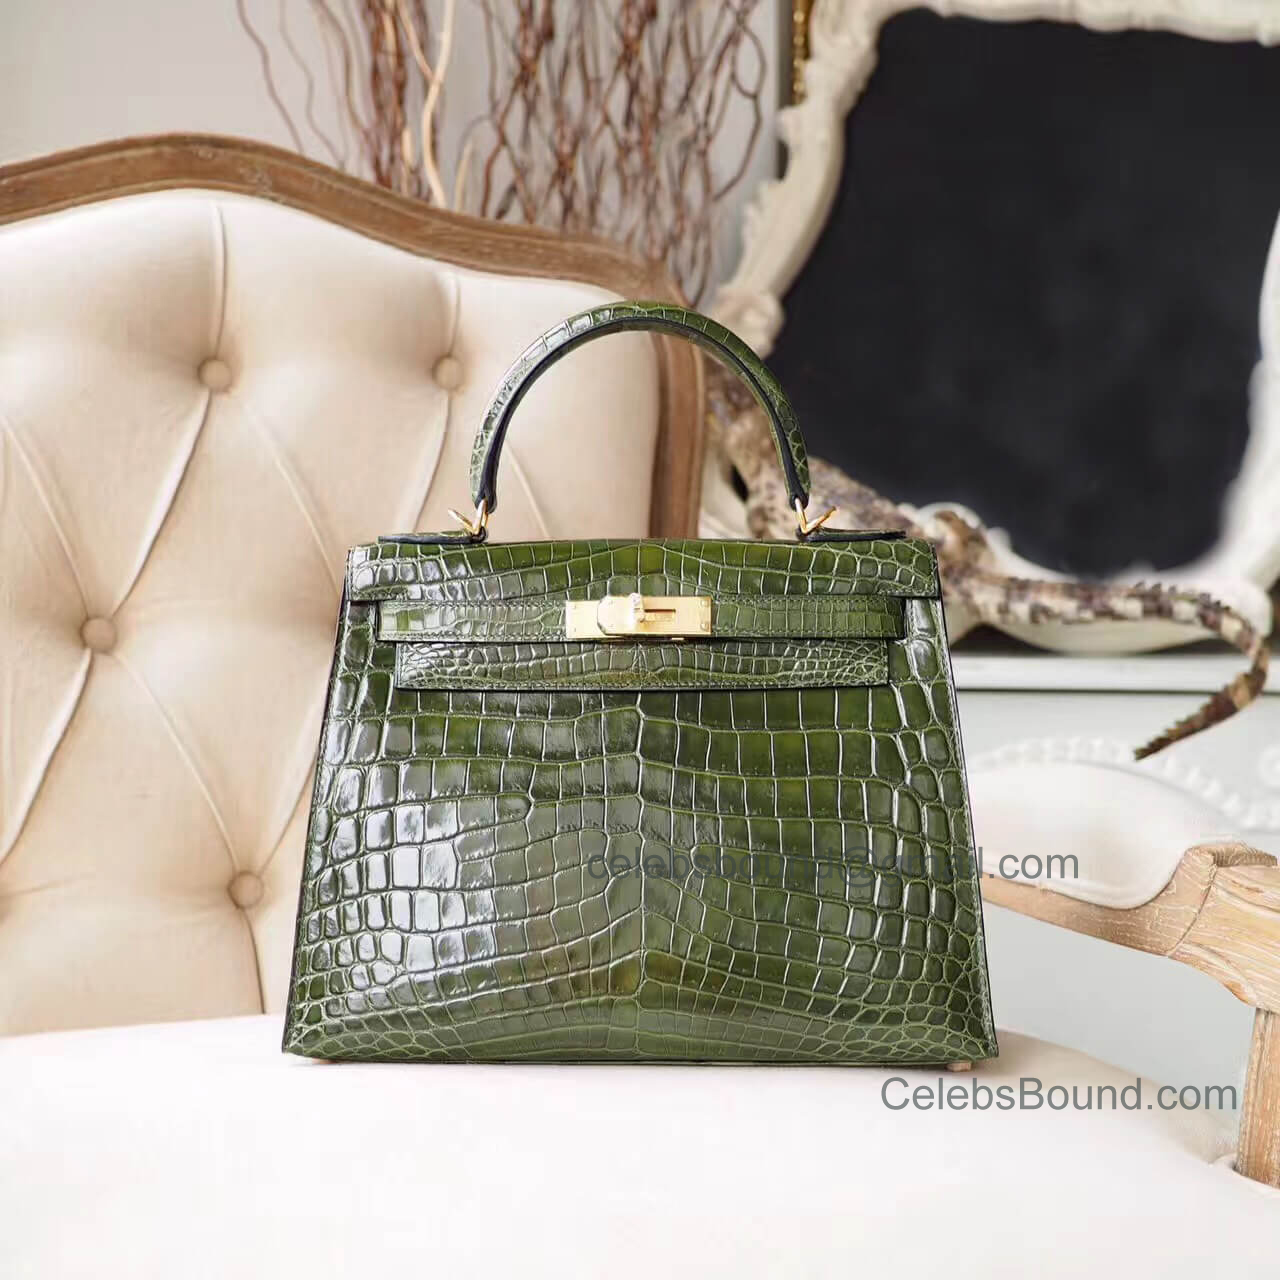 Replica Hermes Kelly 28 Bag in 6h Veronese Shiny Nile Croc GHW